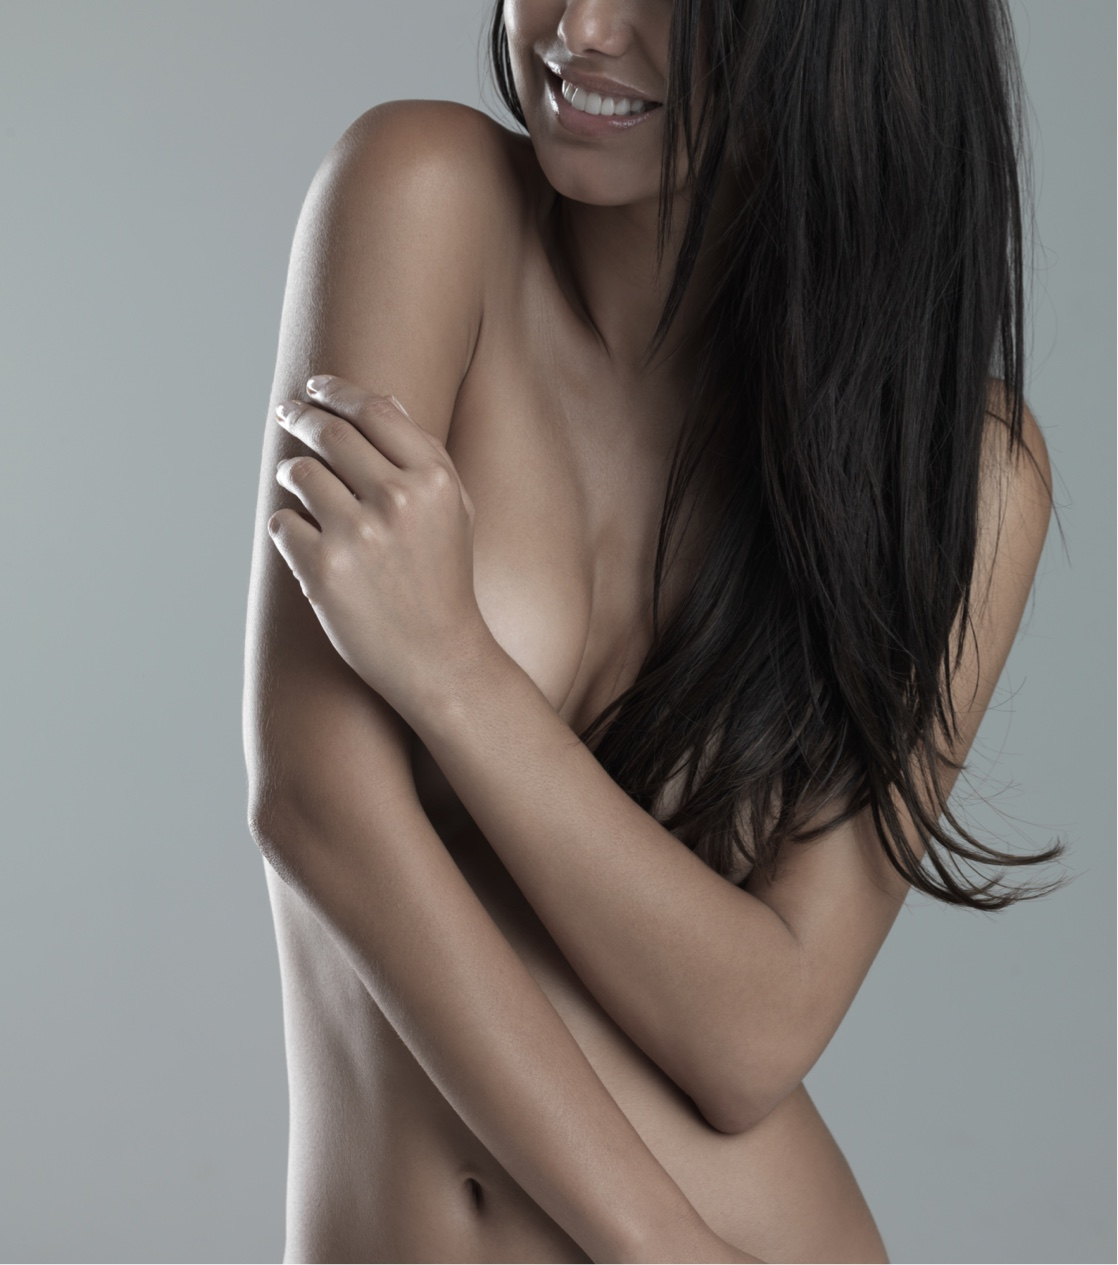 woman smiling covering breasts